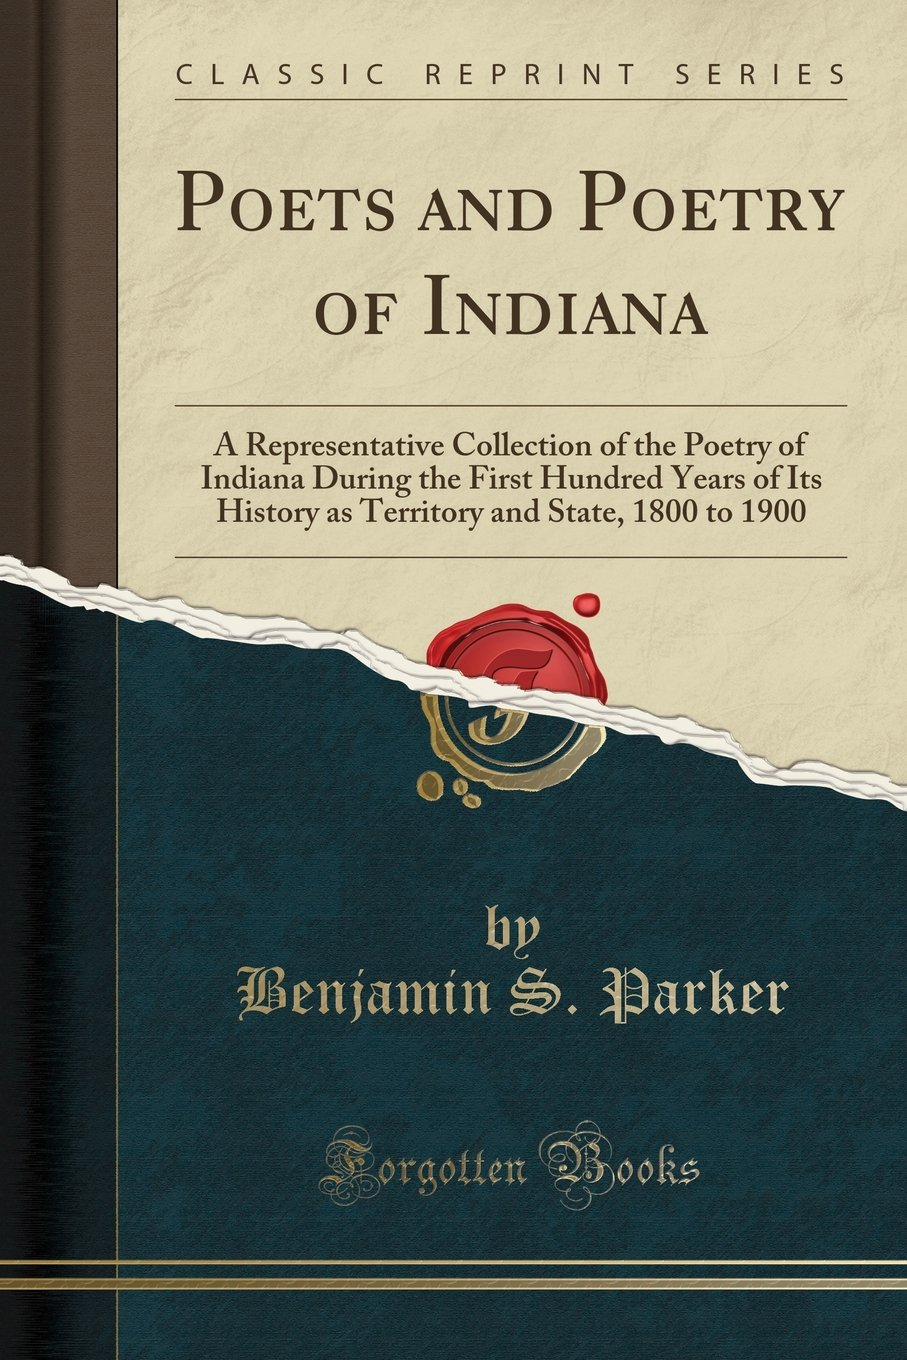 Download Poets and Poetry of Indiana: A Representative Collection of the Poetry of Indiana During the First Hundred Years of Its History as Territory and State, 1800 to 1900 (Classic Reprint) Text fb2 ebook